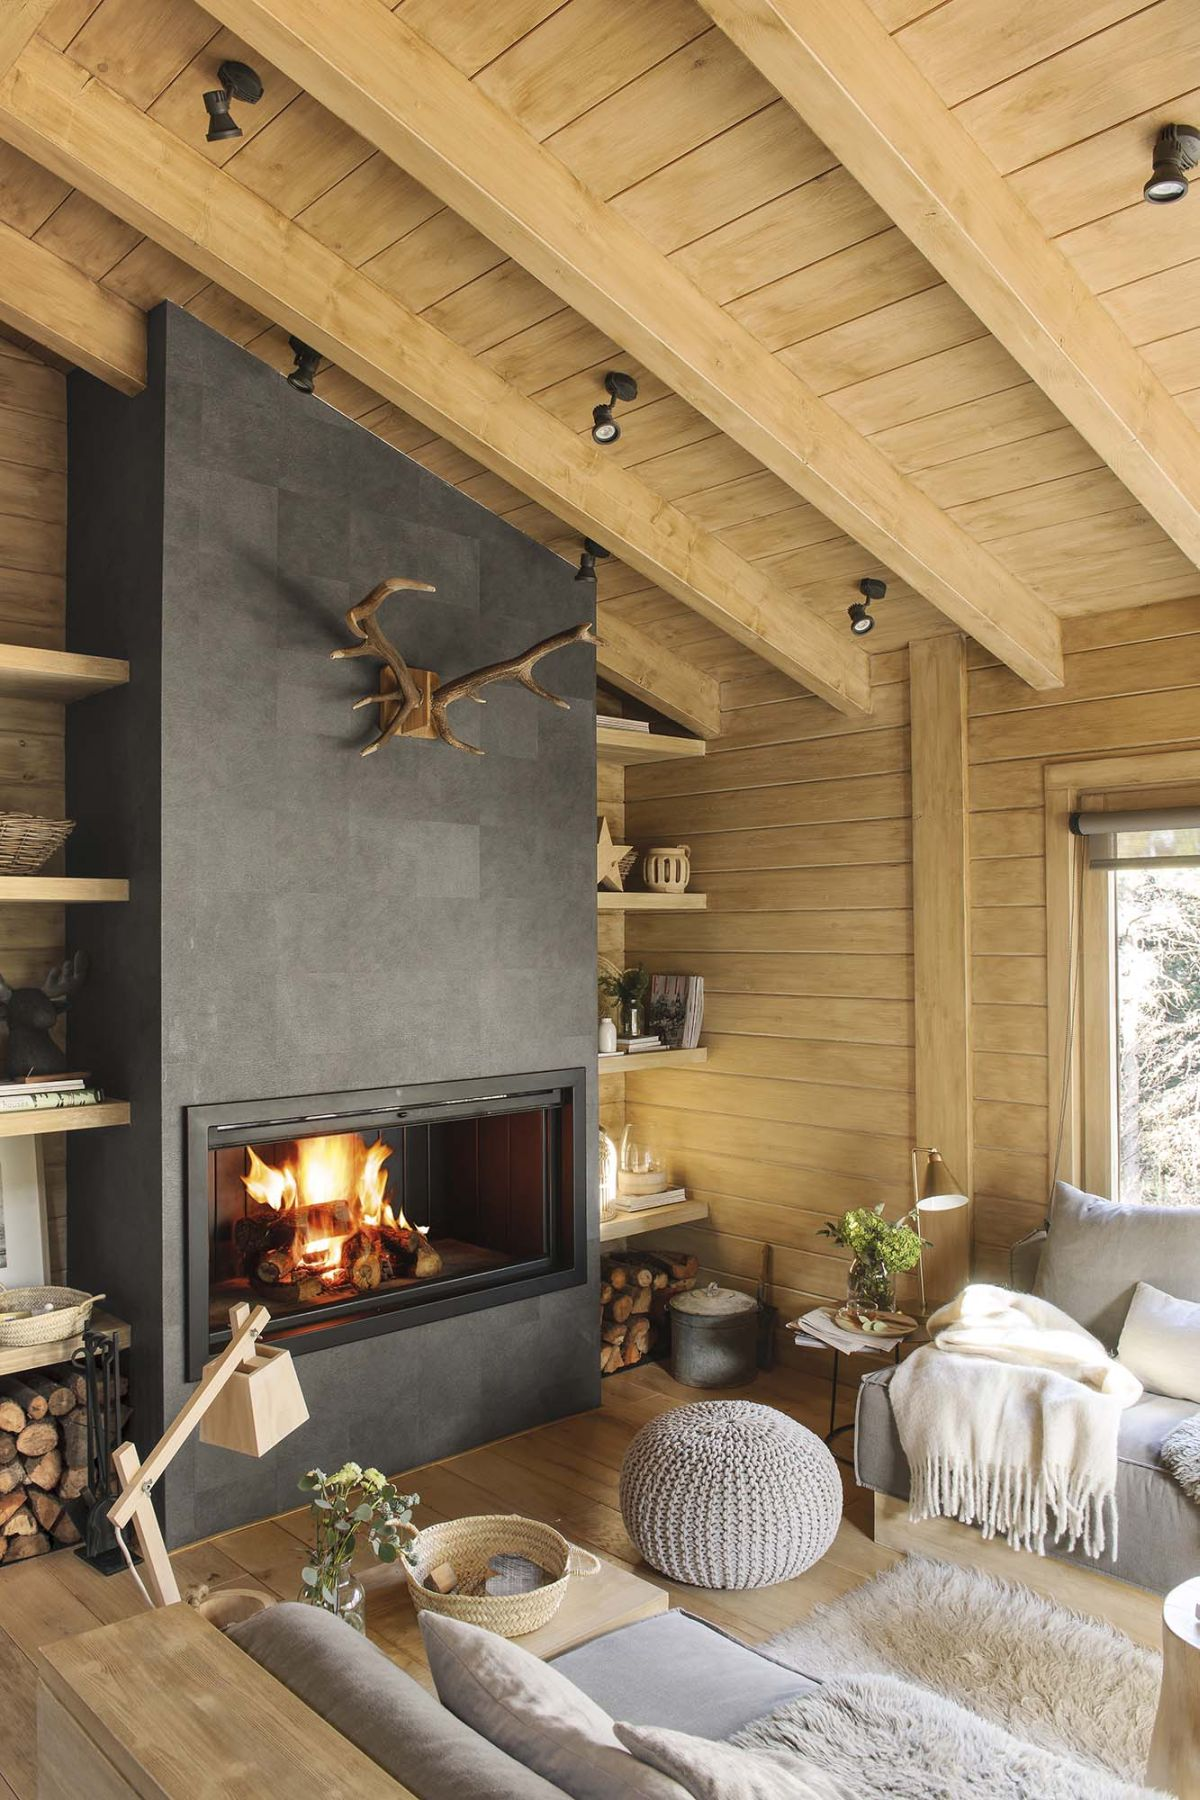 Rustic Living Room Decor Ideas Inspired By Cozy Mountain Cabins